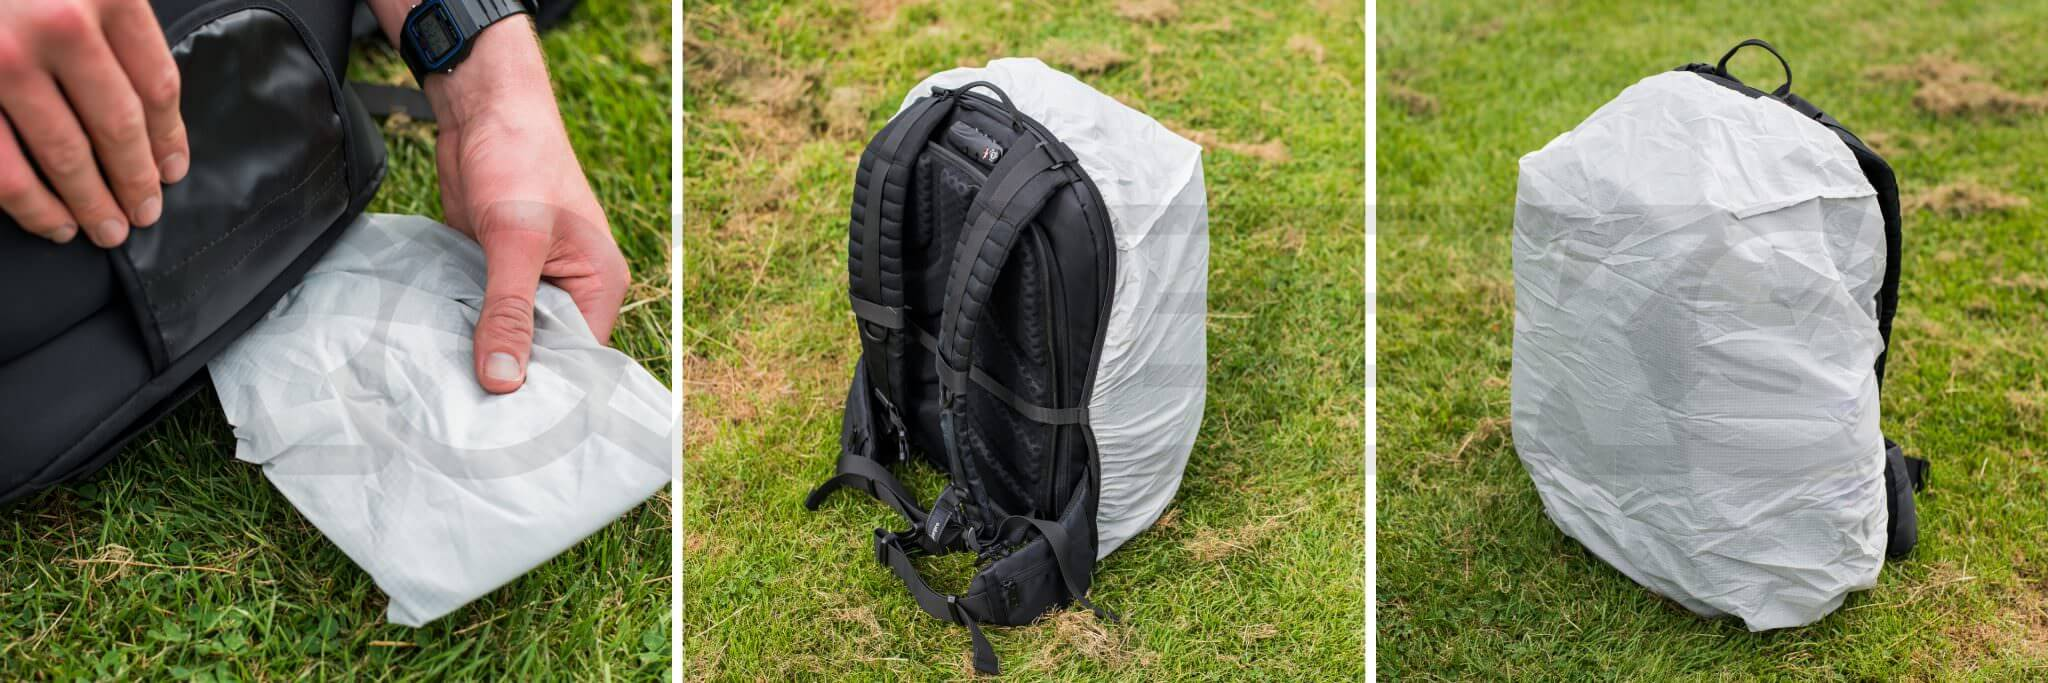 polarpro-trekker-bag_rain-cover-pocket-installed